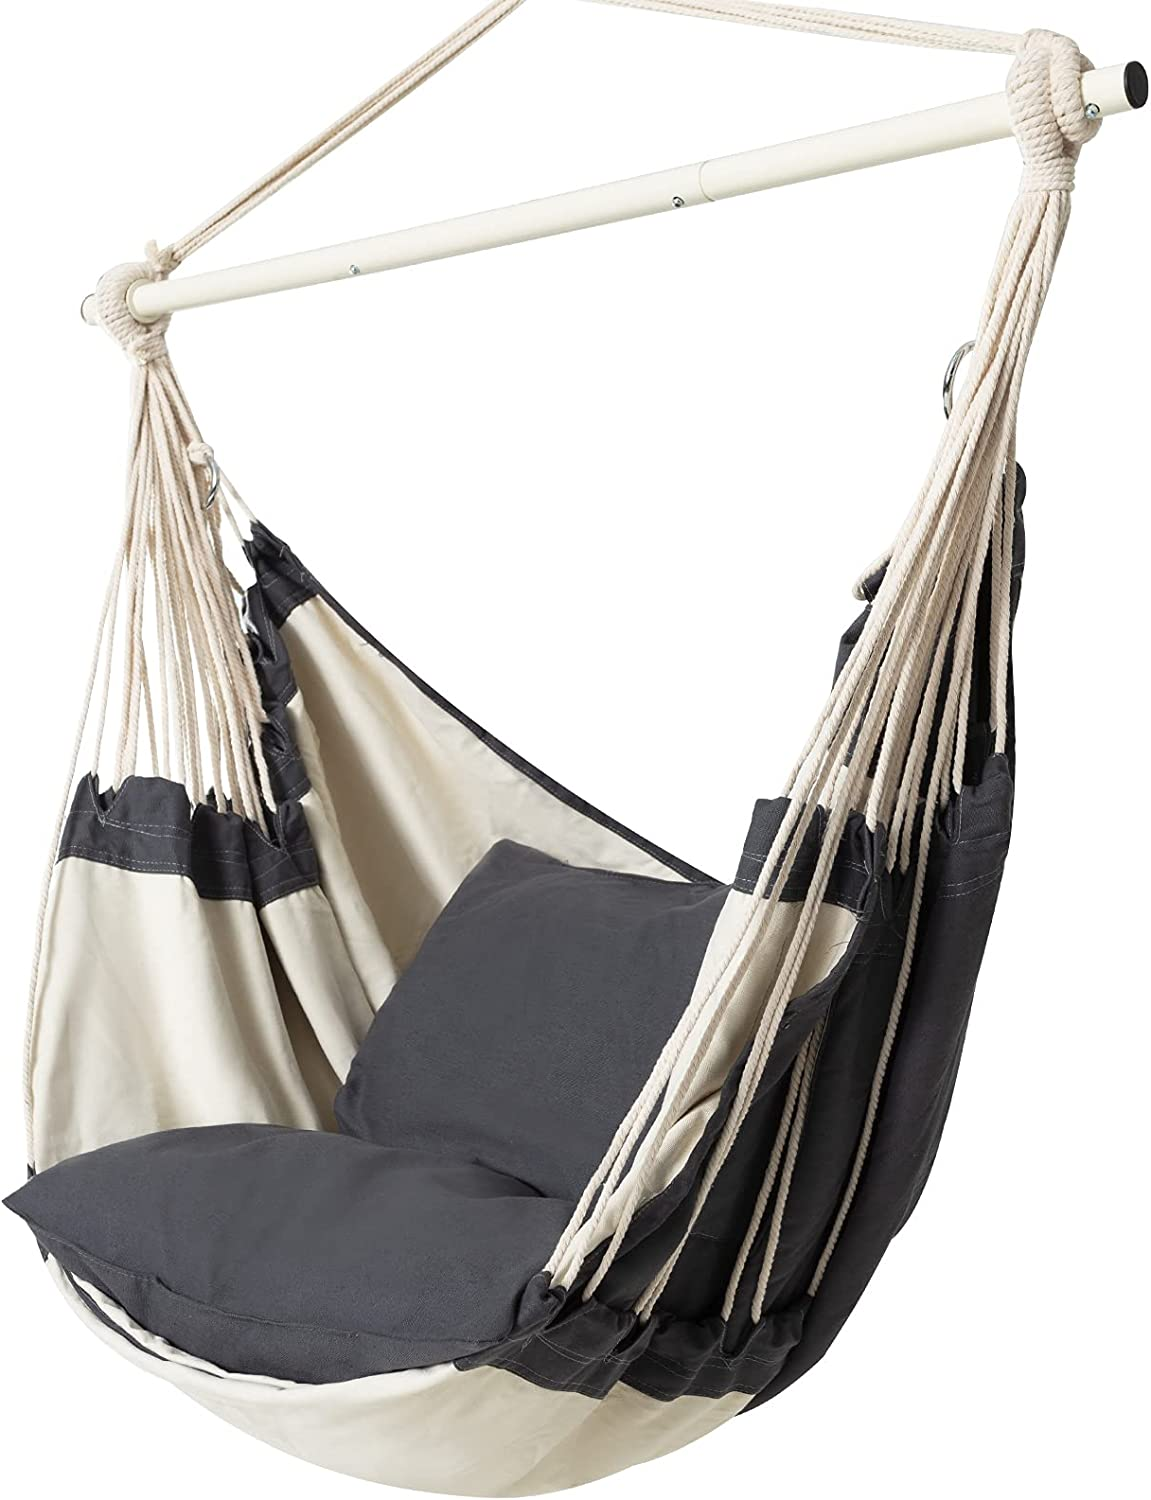 Fundouns Hanging Hammock Chair Charlotte Mall Large Swing Financial sales sale Sitting Re and